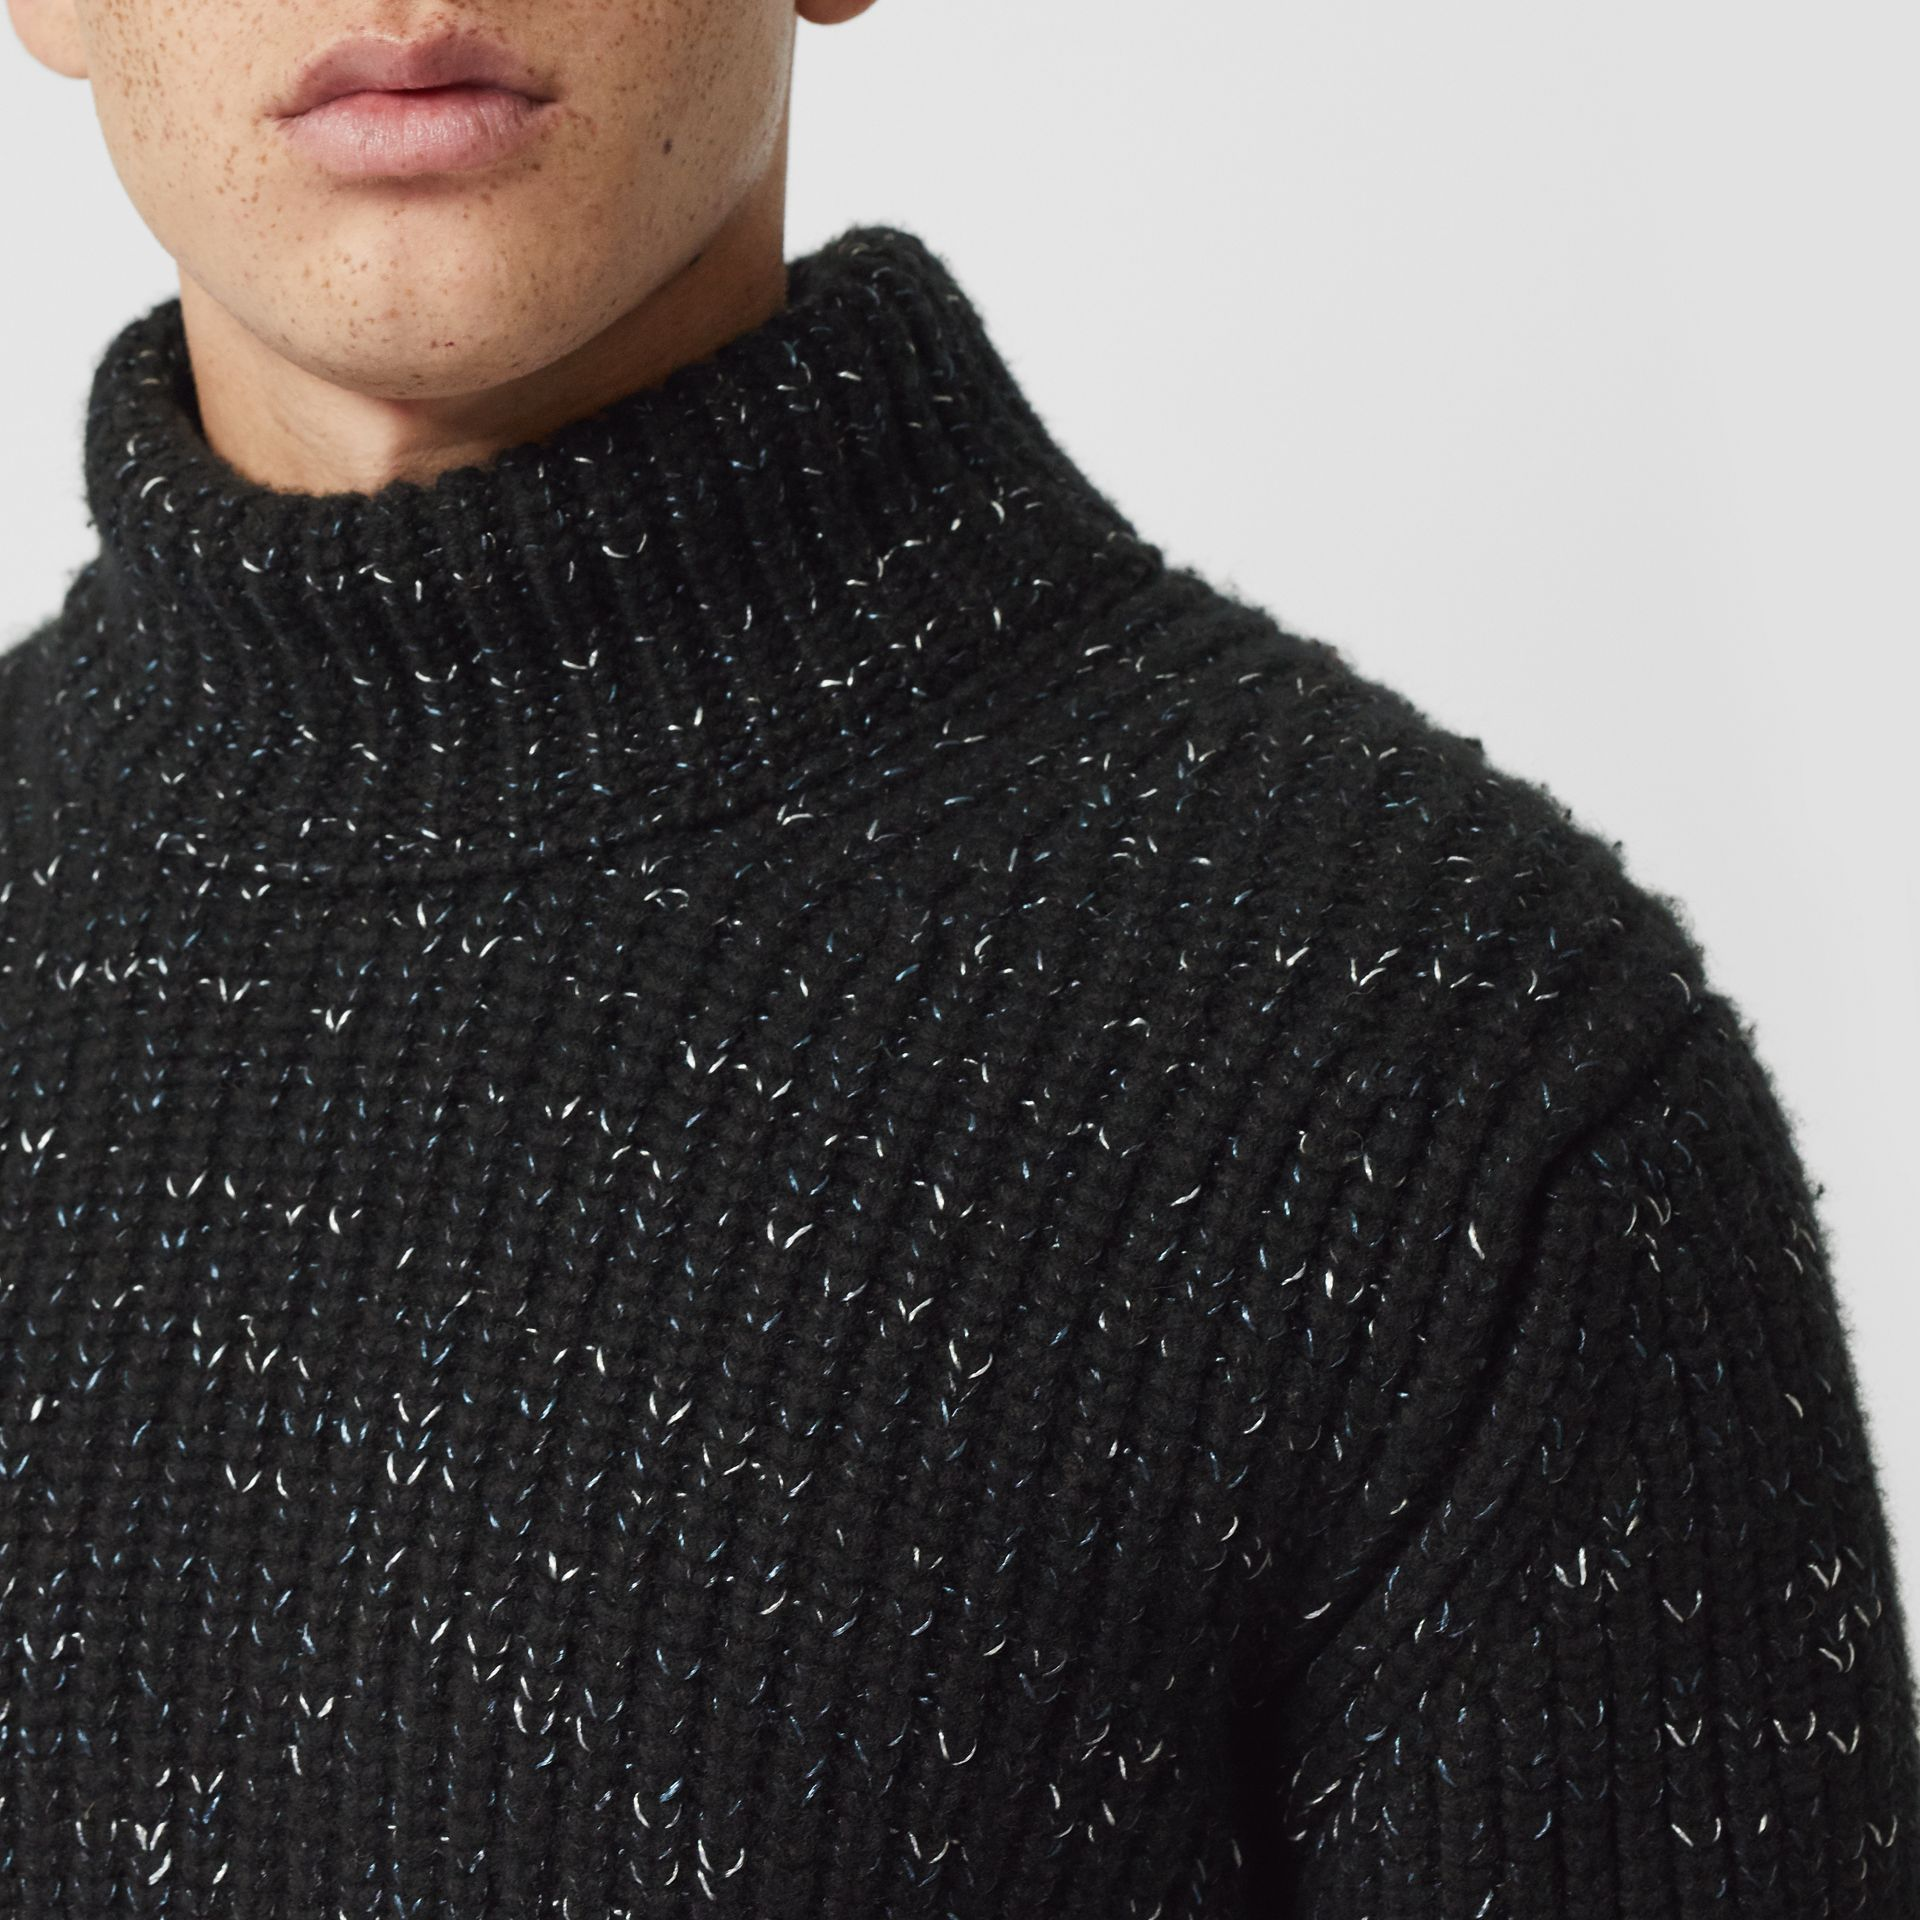 Contrast Knit Wool Cashmere Blend Sweater in Black - Men | Burberry - gallery image 1